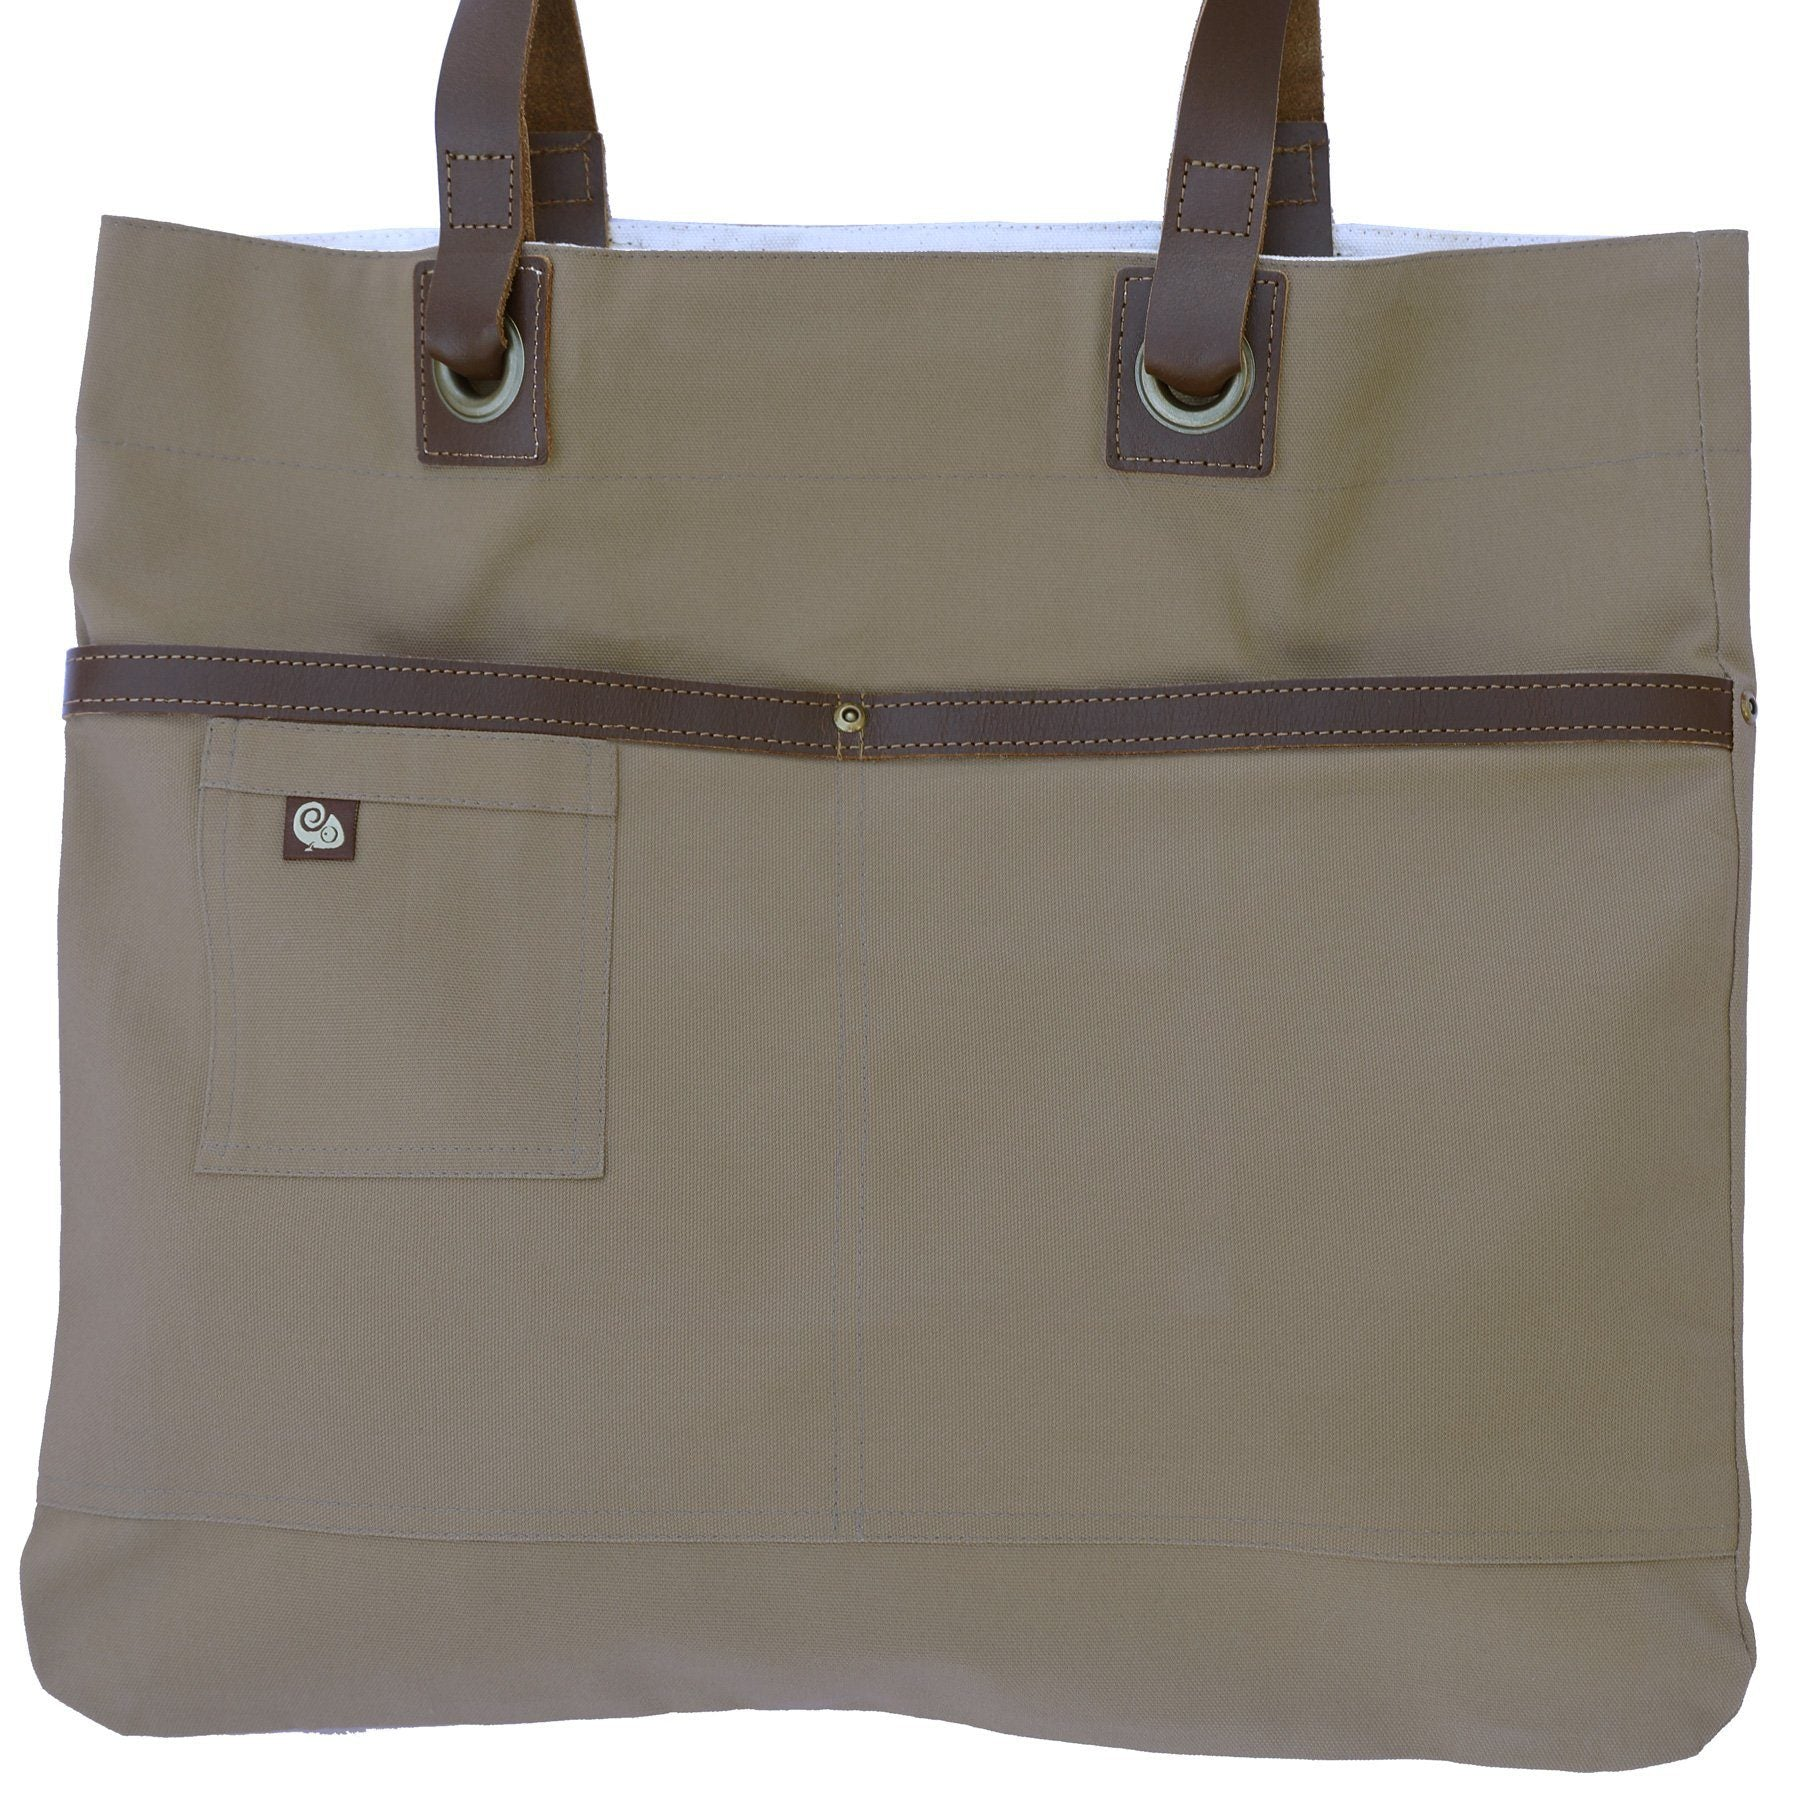 Koda Austell Canvas Bag (Khaki)